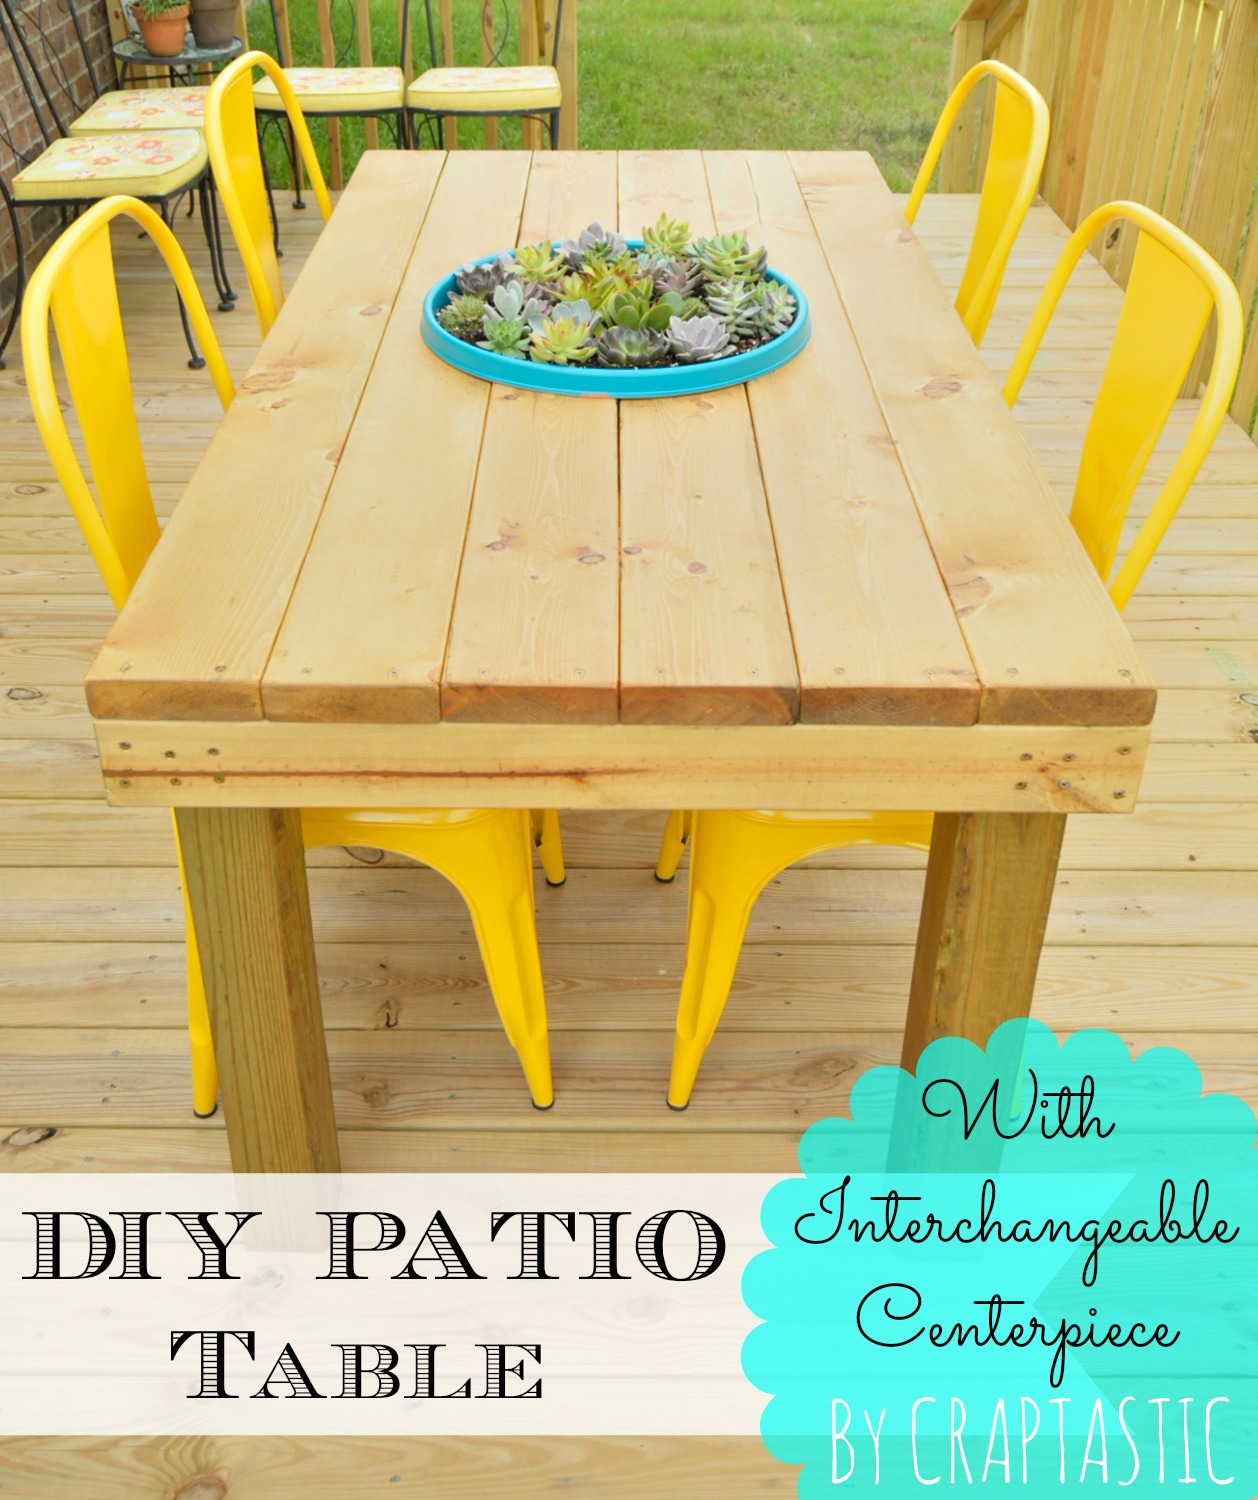 craptastic diy patio table with interchangeable centerpiece